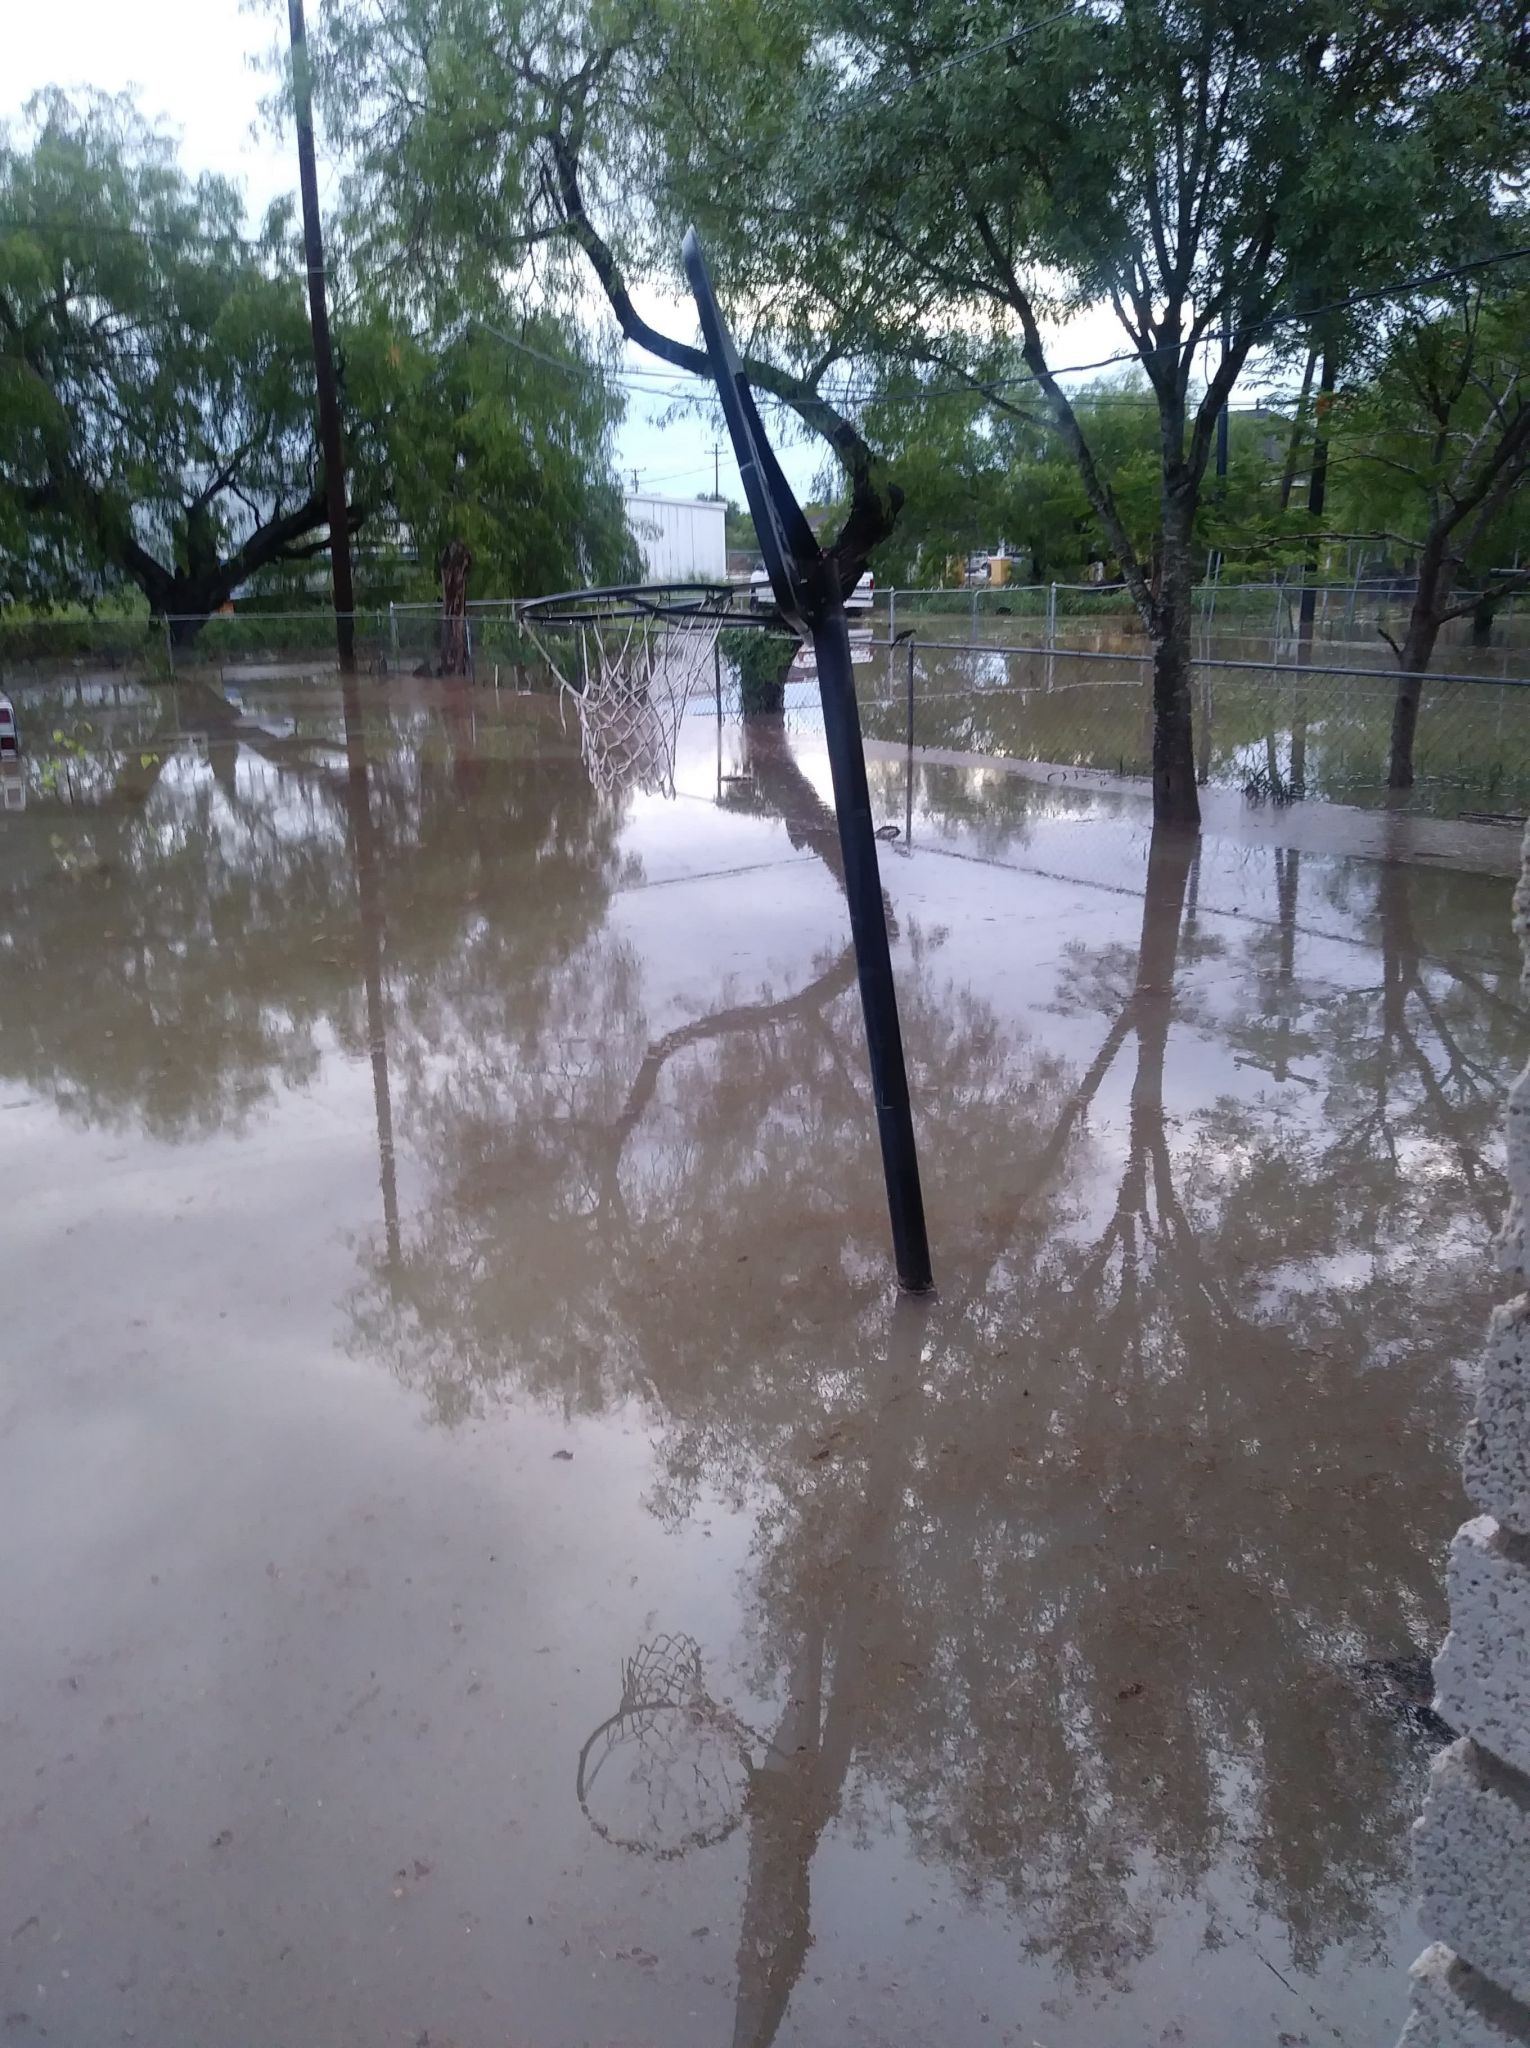 Photos Show Severity Of Flooding In Rio Grande Valley